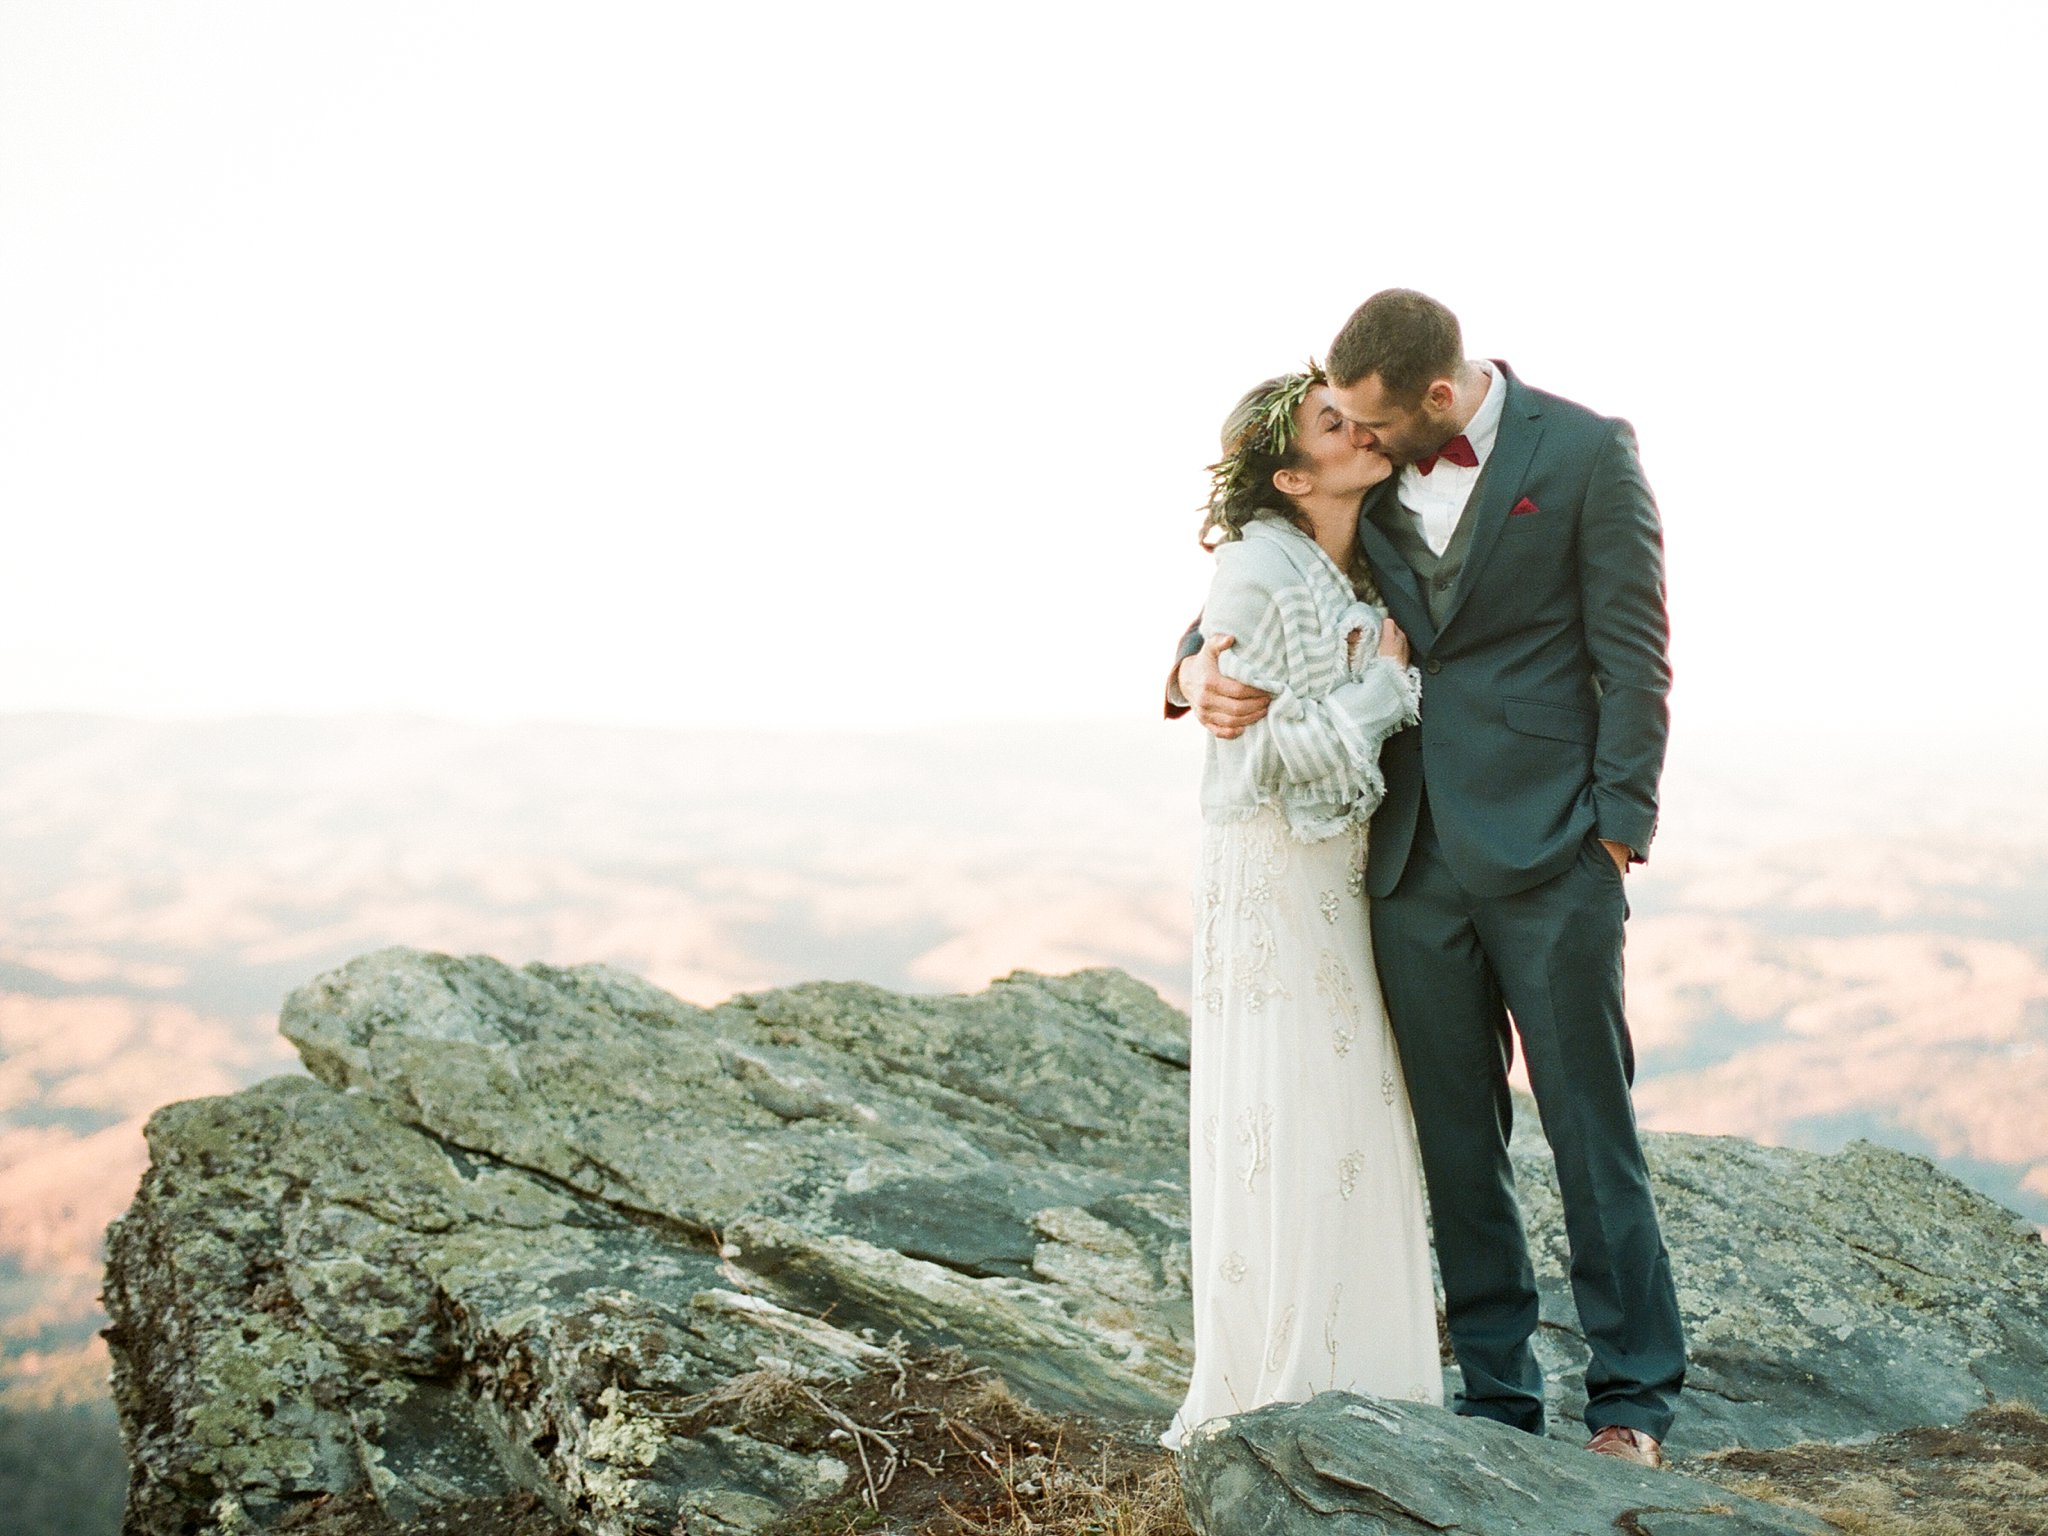 Wintry North Carolina Mountaintop Wedding Photo By Live View Studios Https Ruffledblog